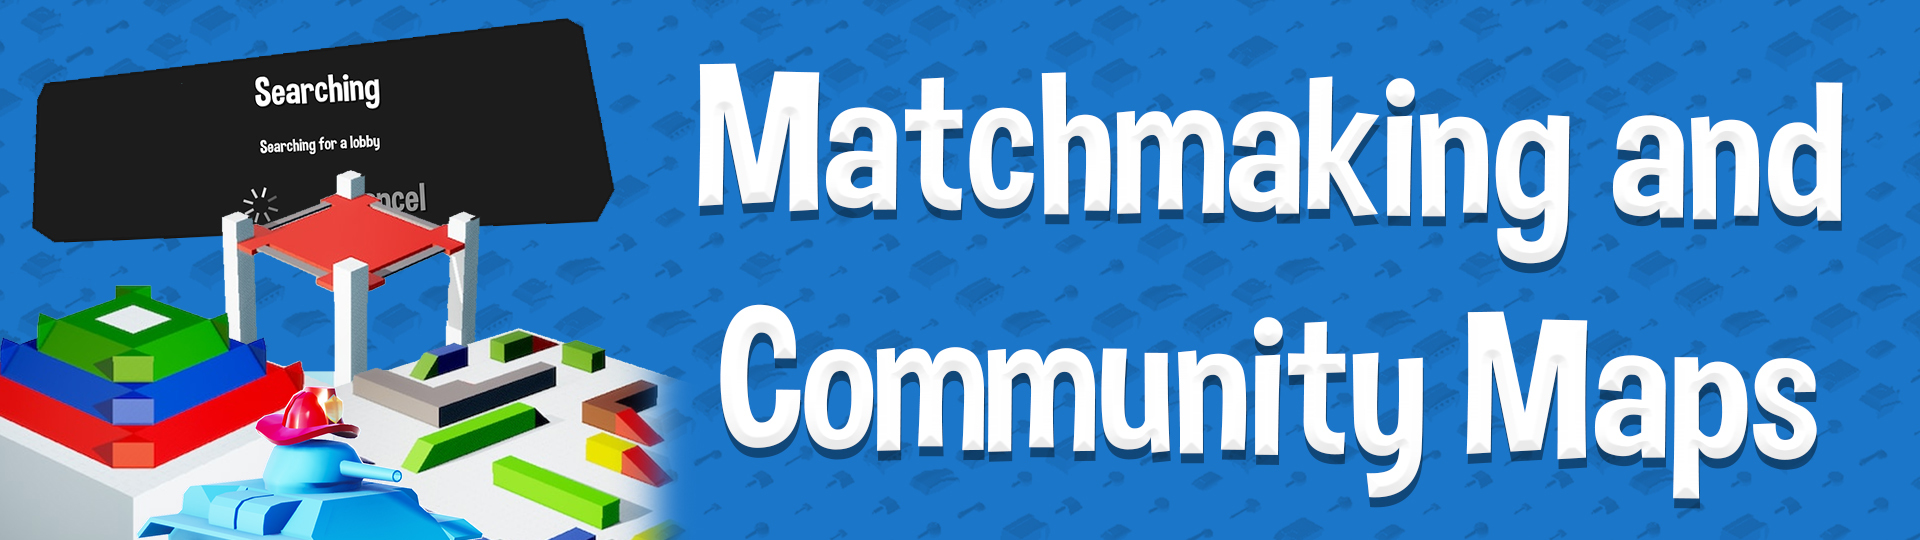 Kinesiske matchmaking websites